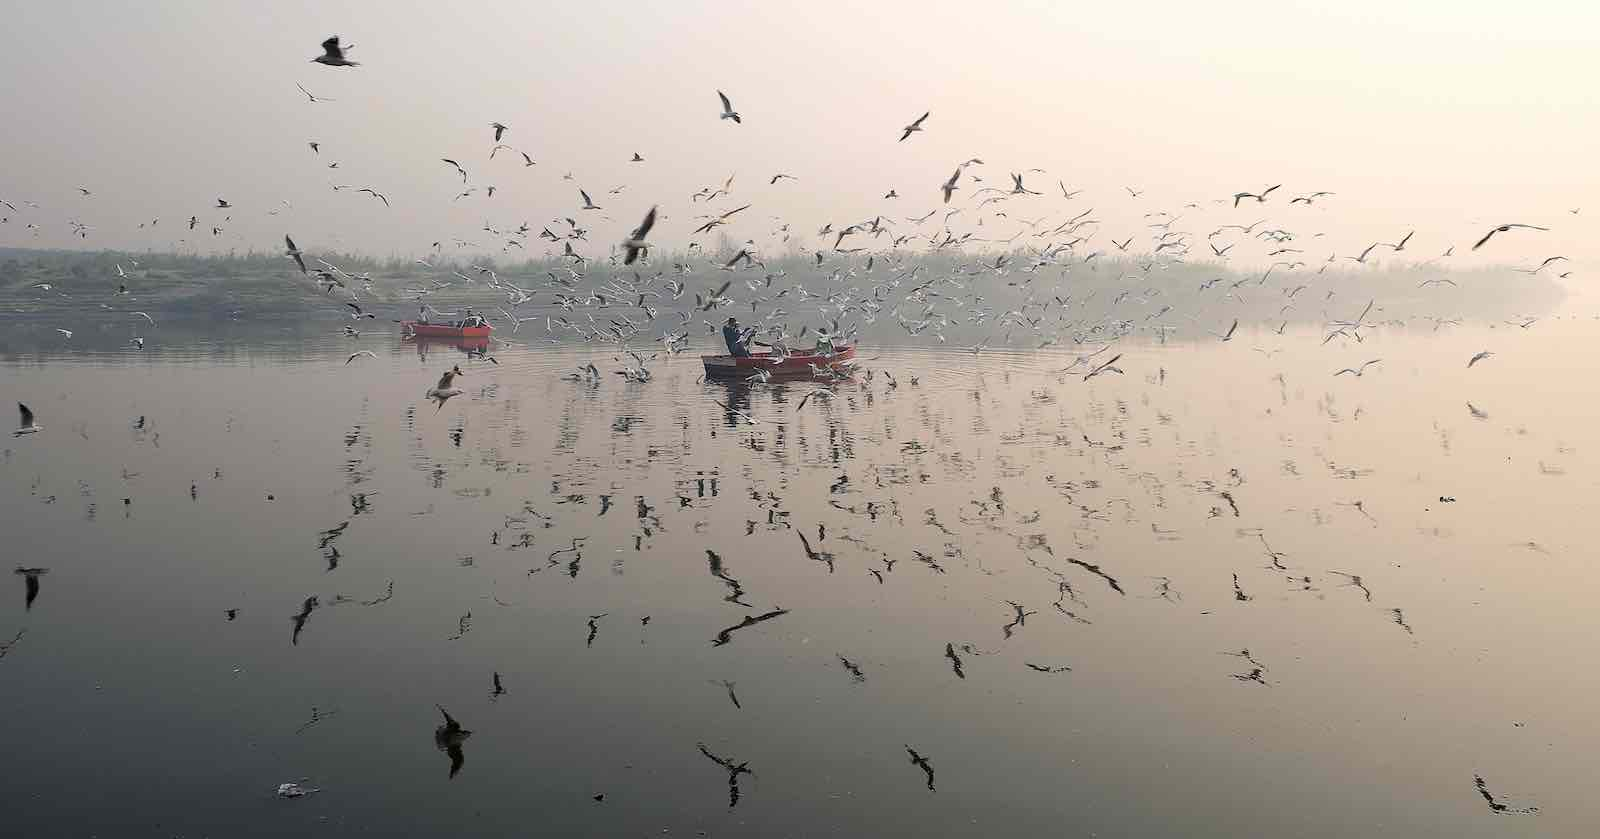 Yamuna River on a morning of heavy air pollution in New Delhi on 27 November 2018 (Photo: Noemi Cassanelli via Getty)